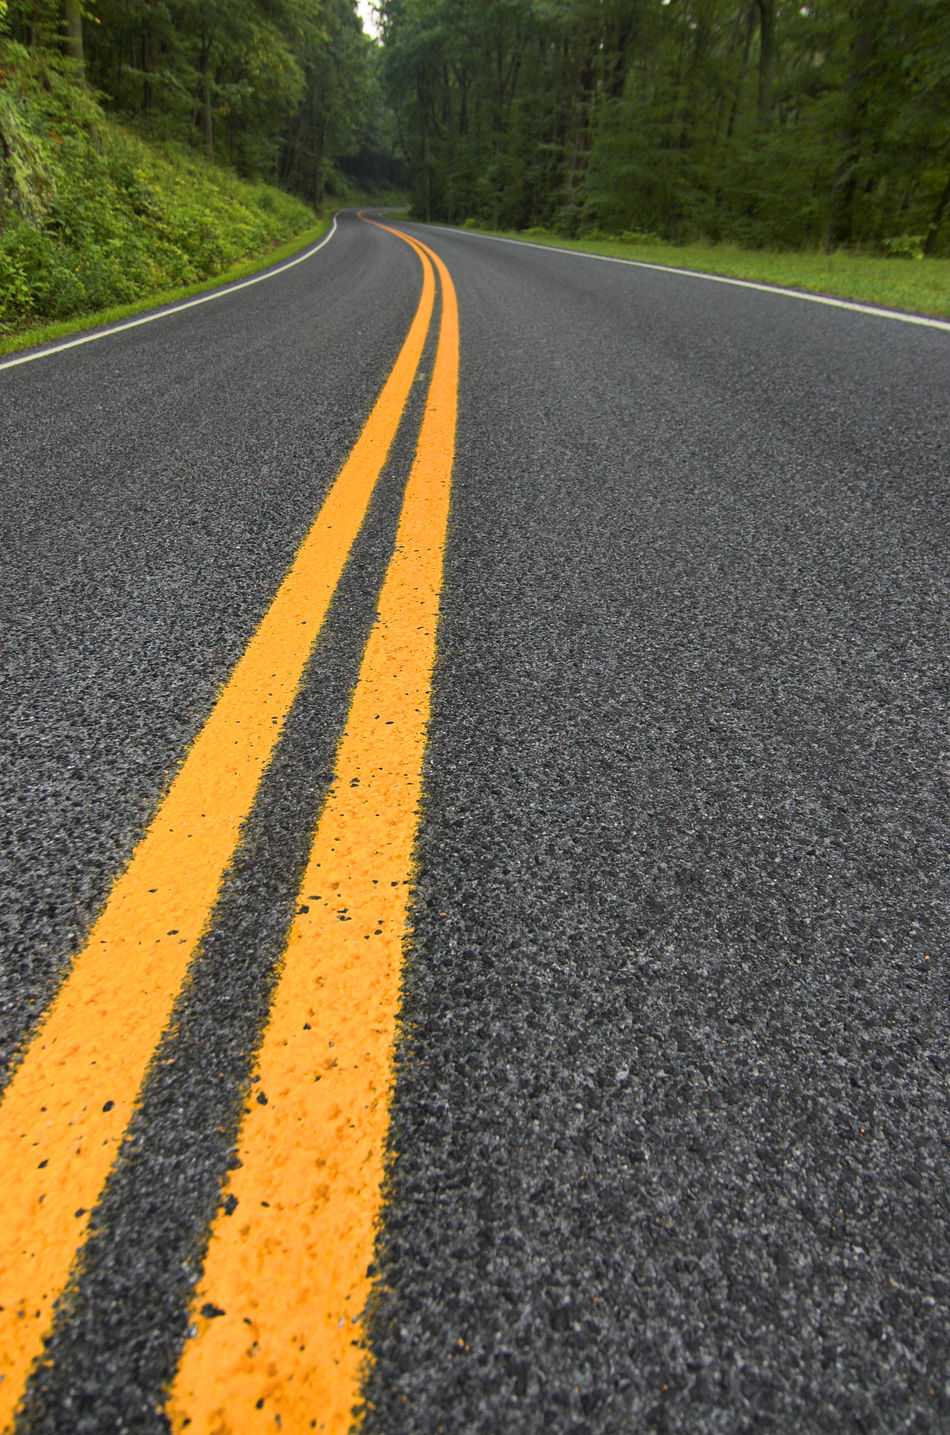 Traveling across Shenandoah and the Skyline Drive Asphalt Day Diminishing Perspective Dividing Line Double Yellow Line Driving Empty Empty Road Inspiration Inspirational LINE Long Orange Color Outdoors Road Road Road Marking Roadtrip Surface Level The Way Forward Tranquil Scene Transportation Vanishing Point Yellow